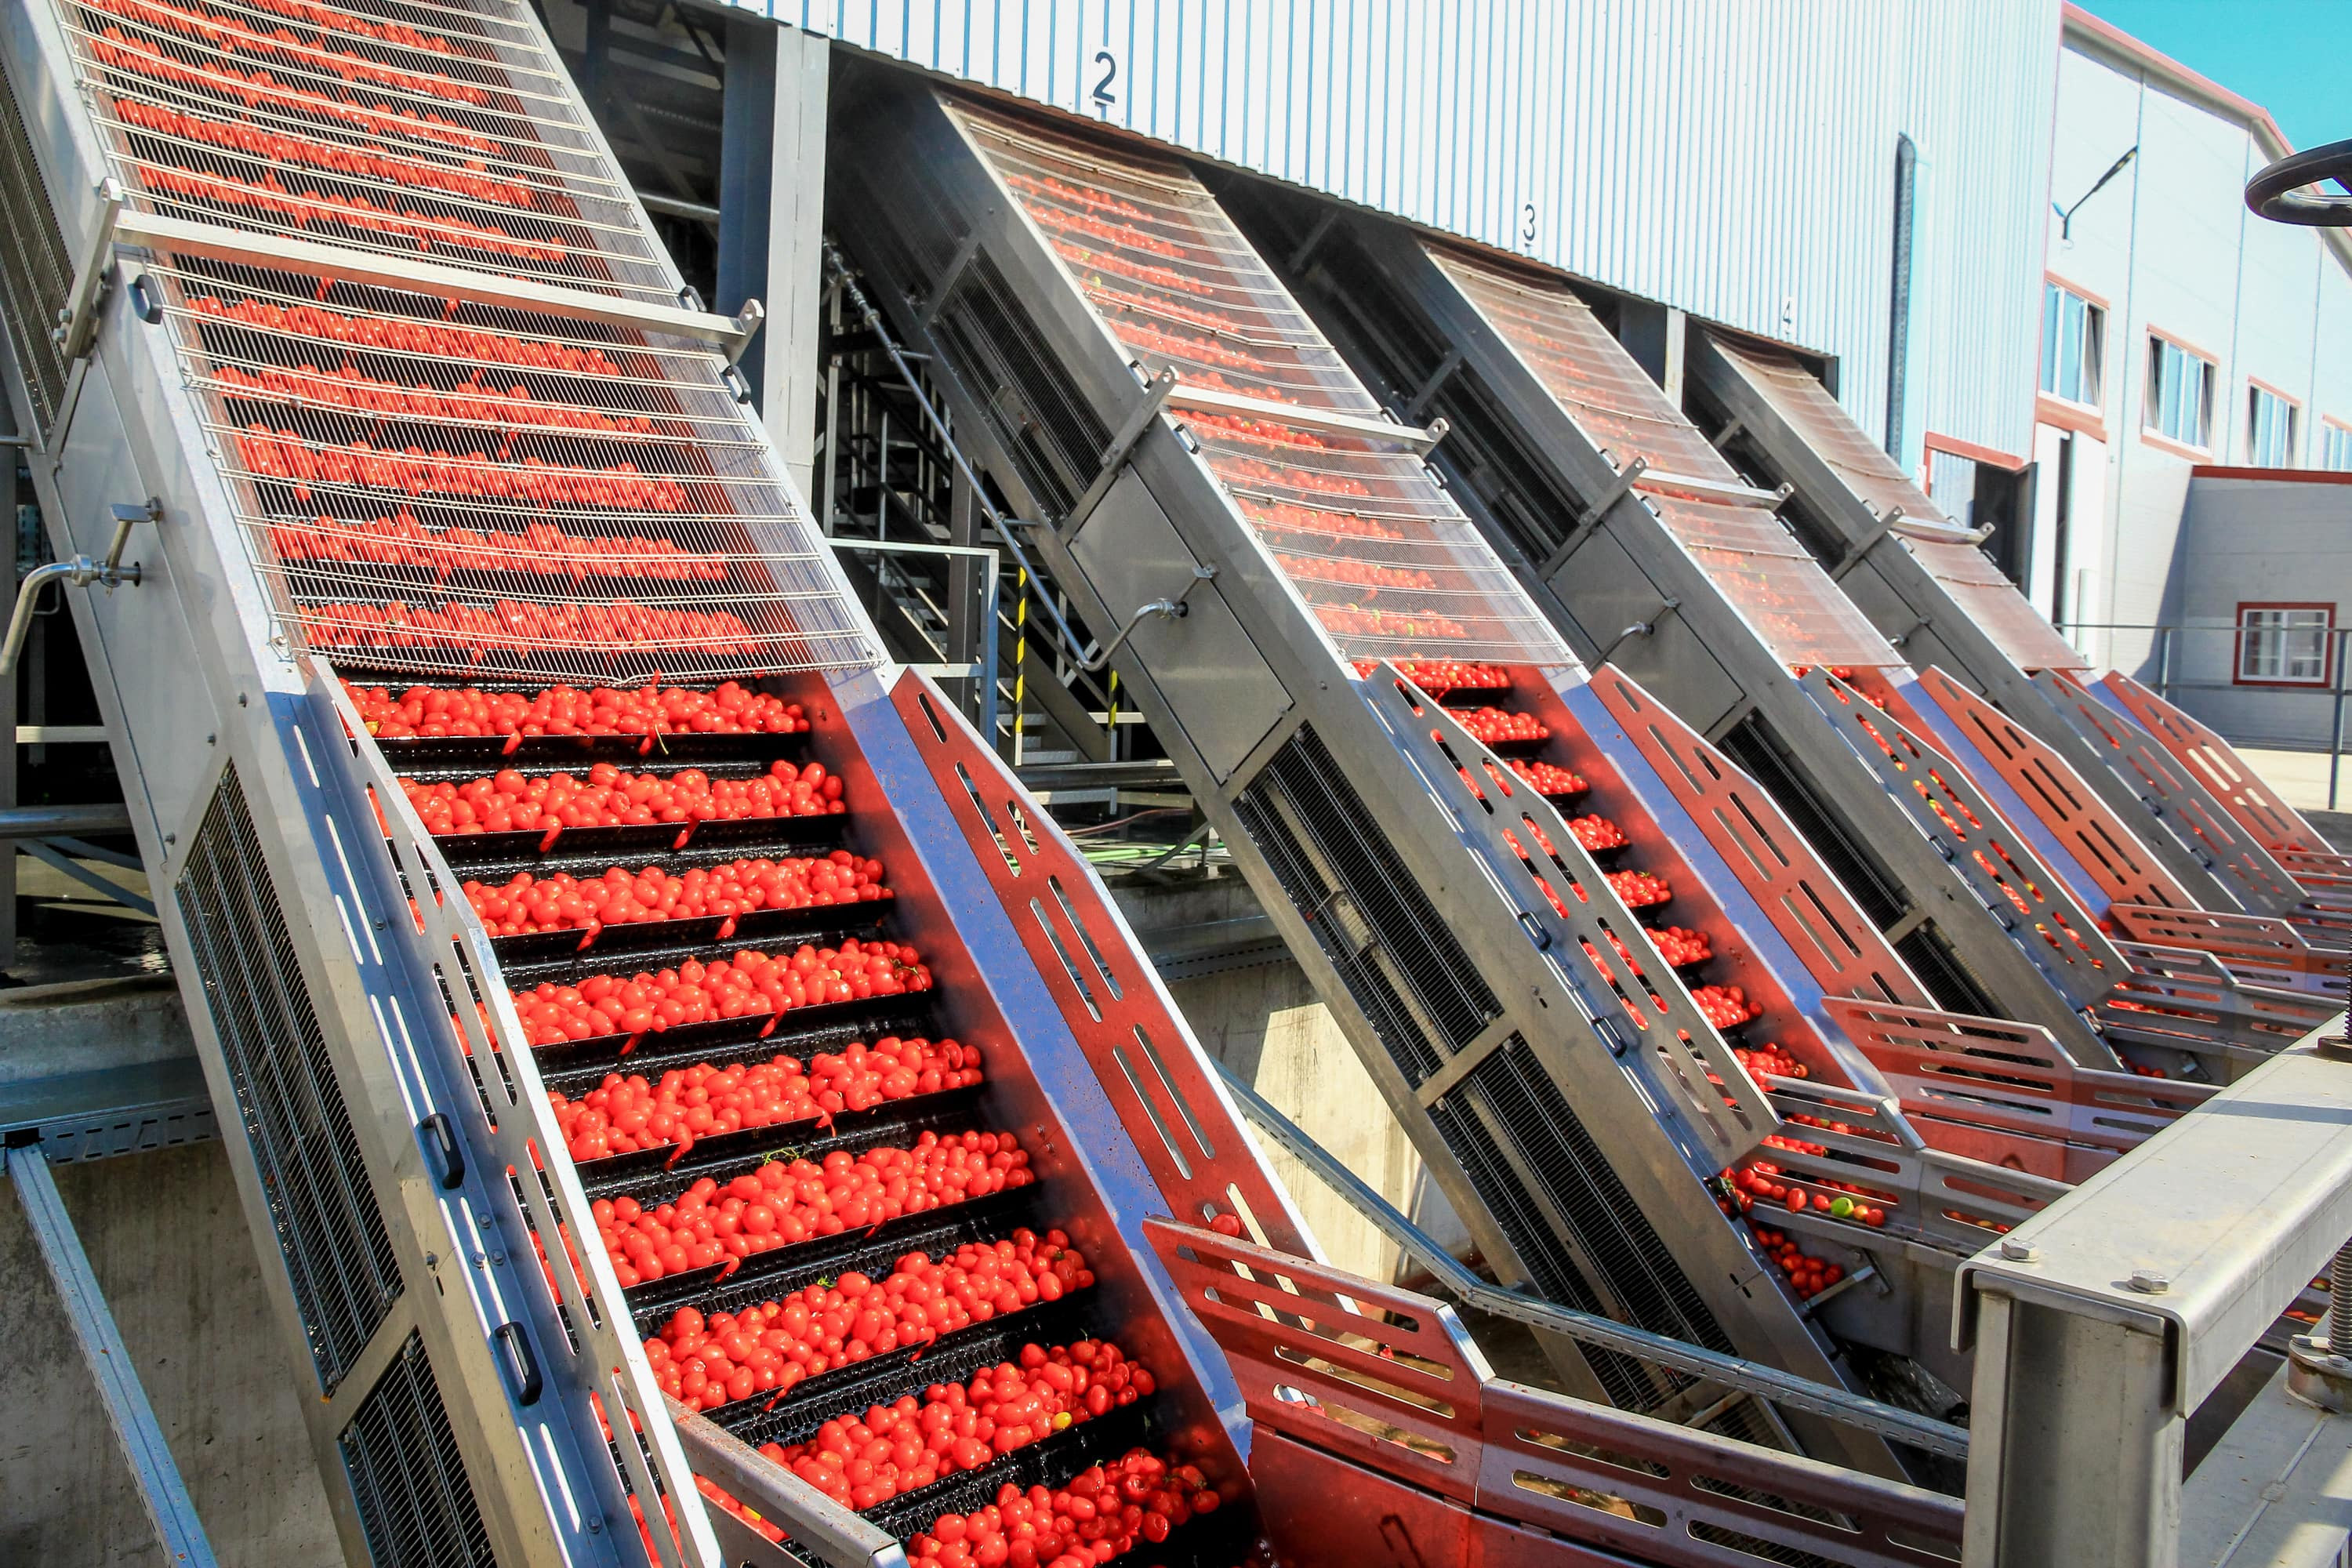 2016 INAGRO TOMATO PASTE PRODUCTION BEGAN